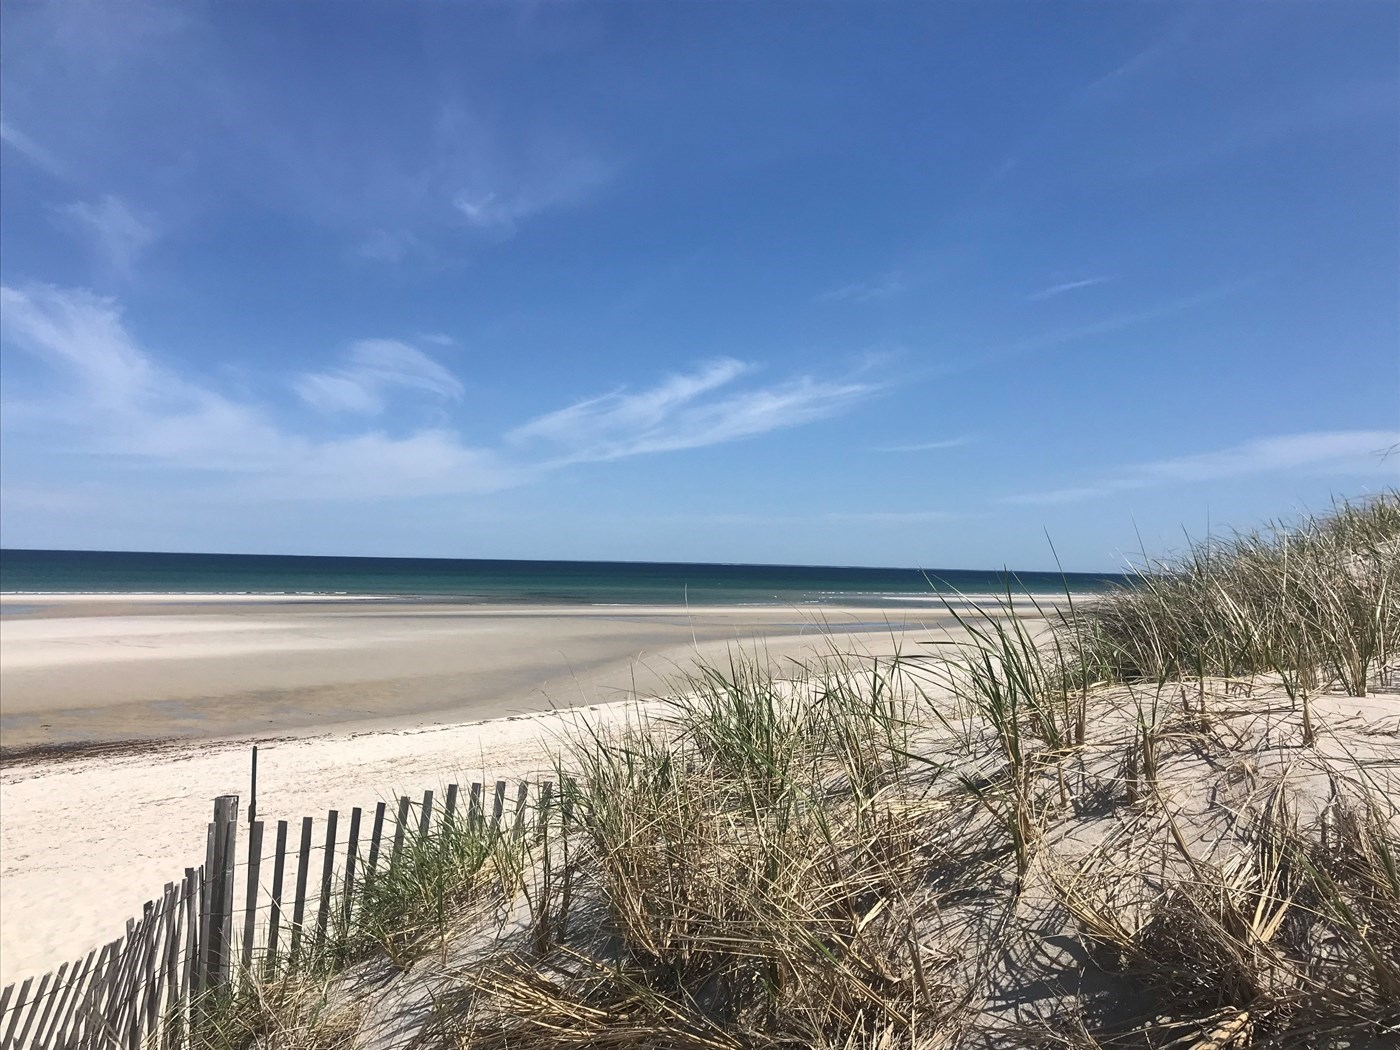 Looking to visit Mayflower Beach? Check out these local attractions and vacation rentals nearby!